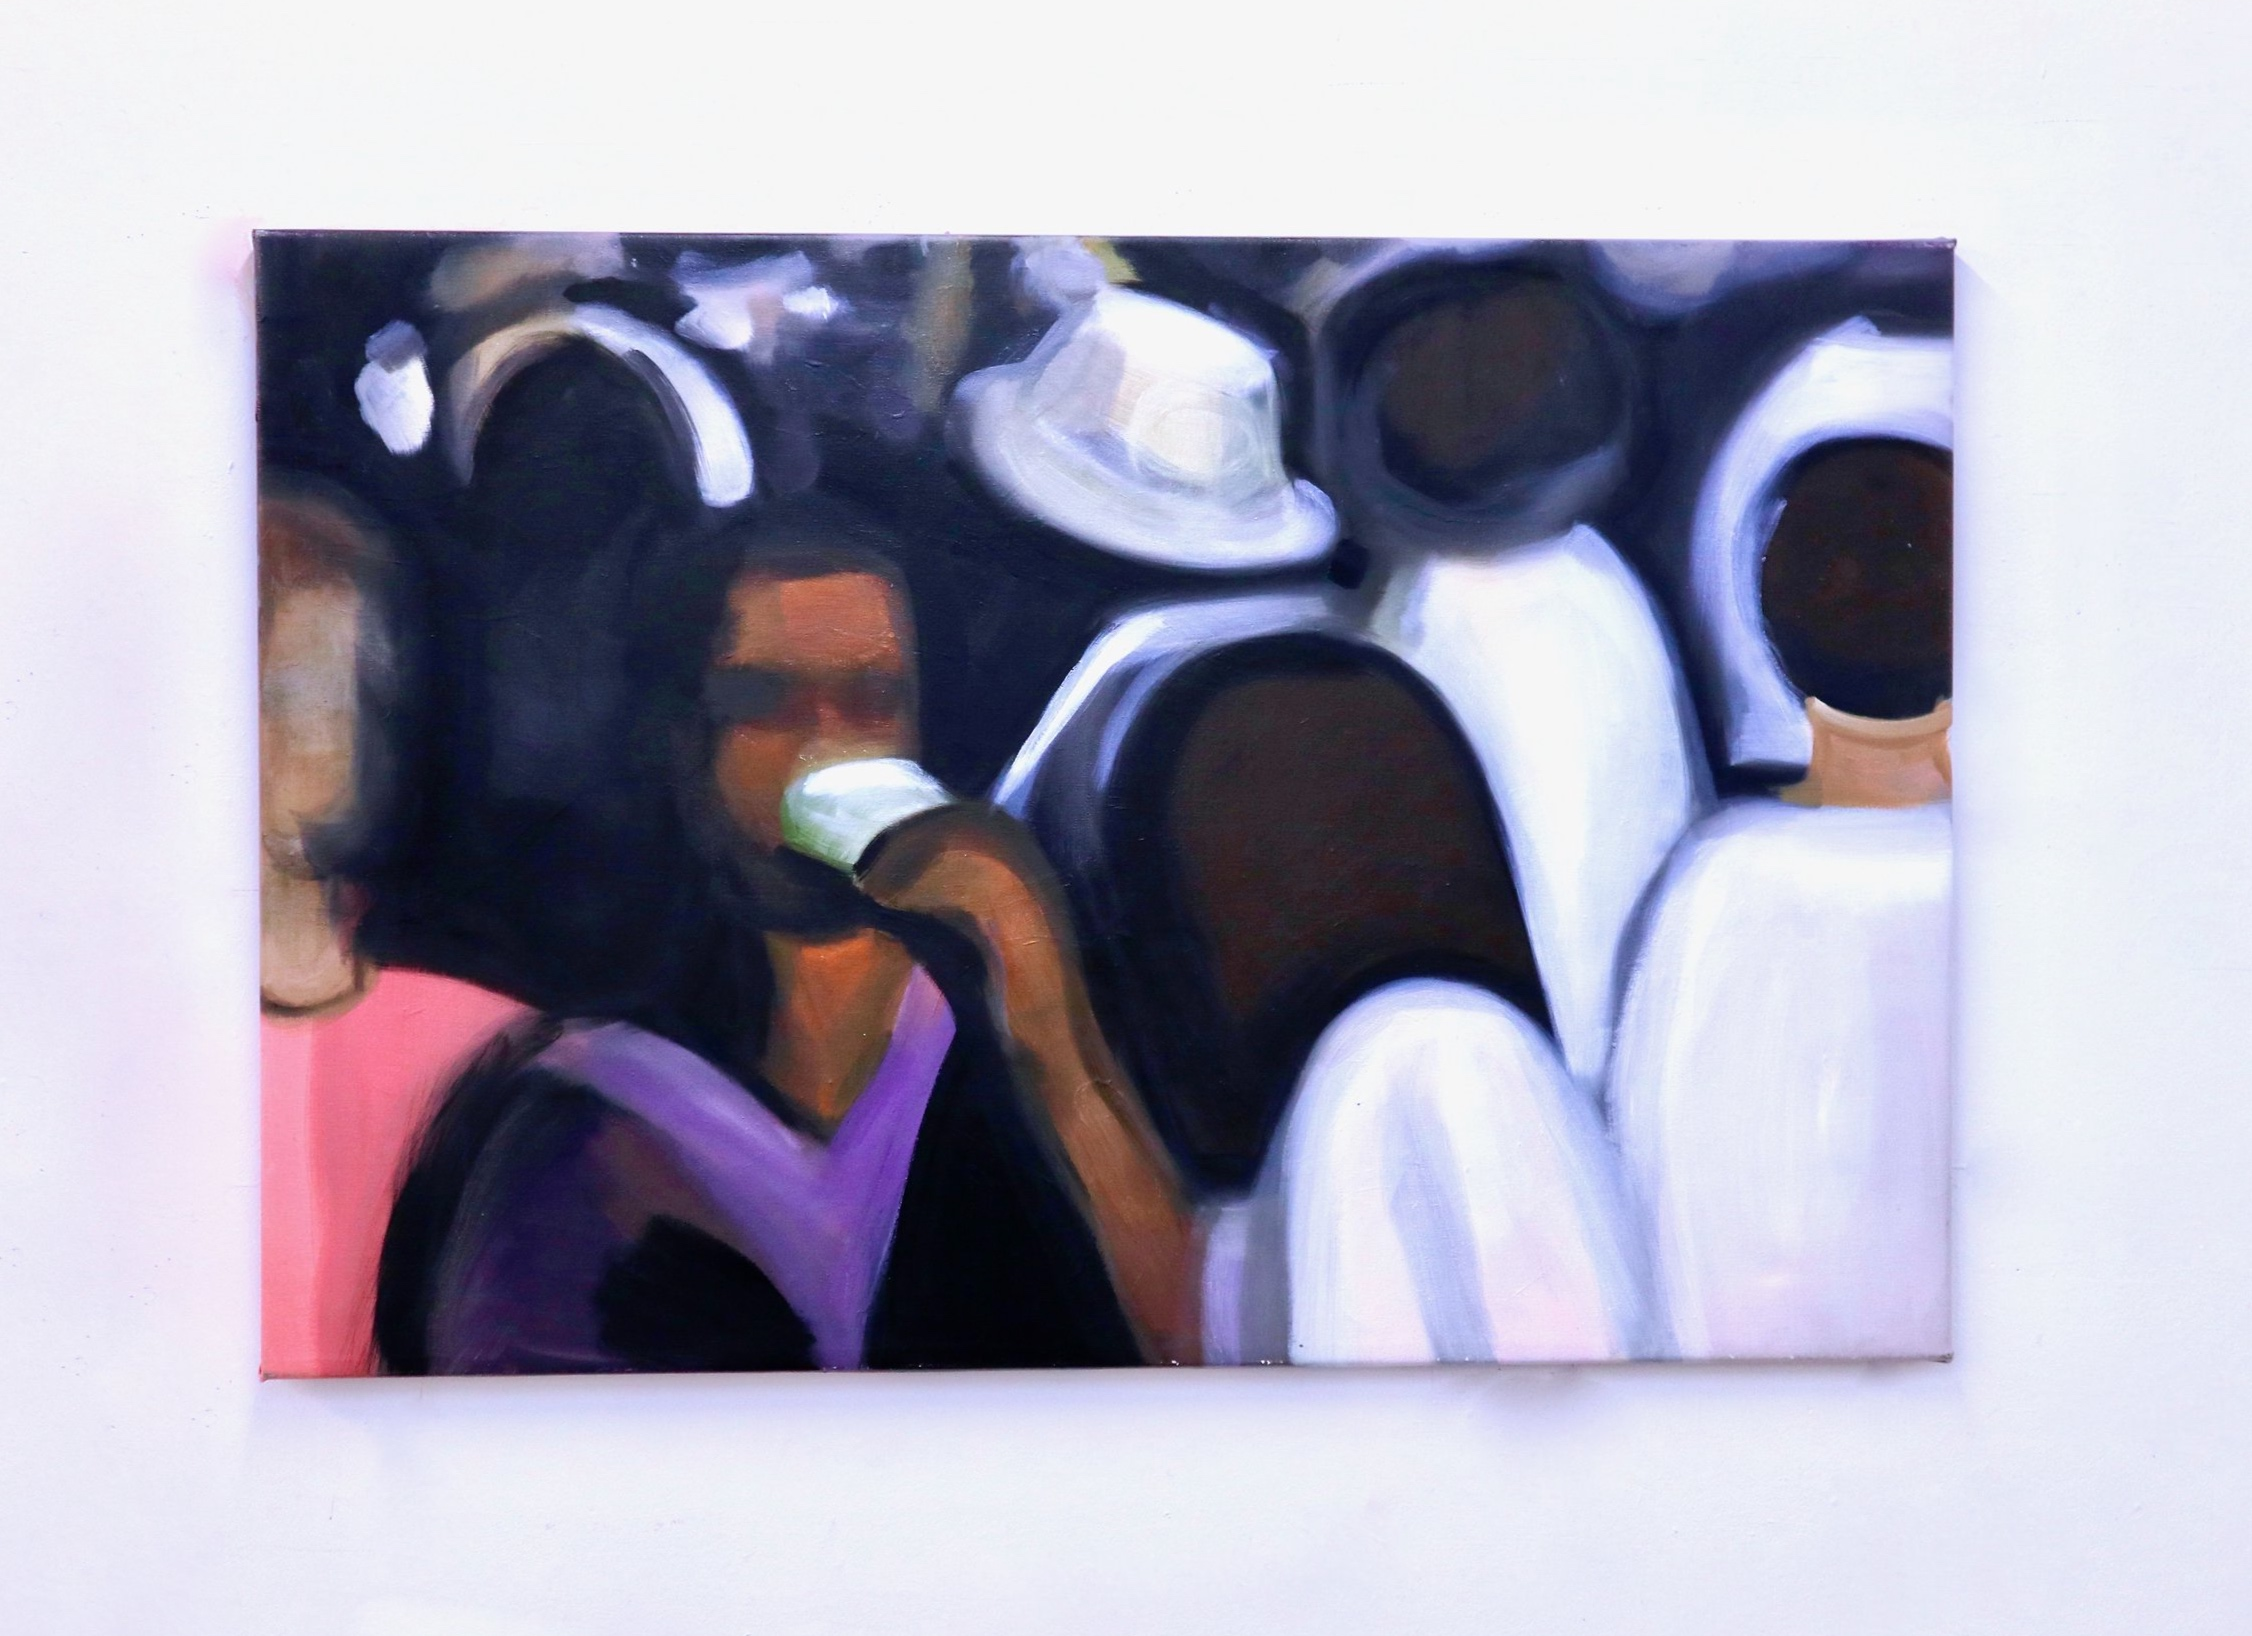 Drinks , 2019 Oil on canvas 90 x 135 cm 35.4 x 53.1 inches